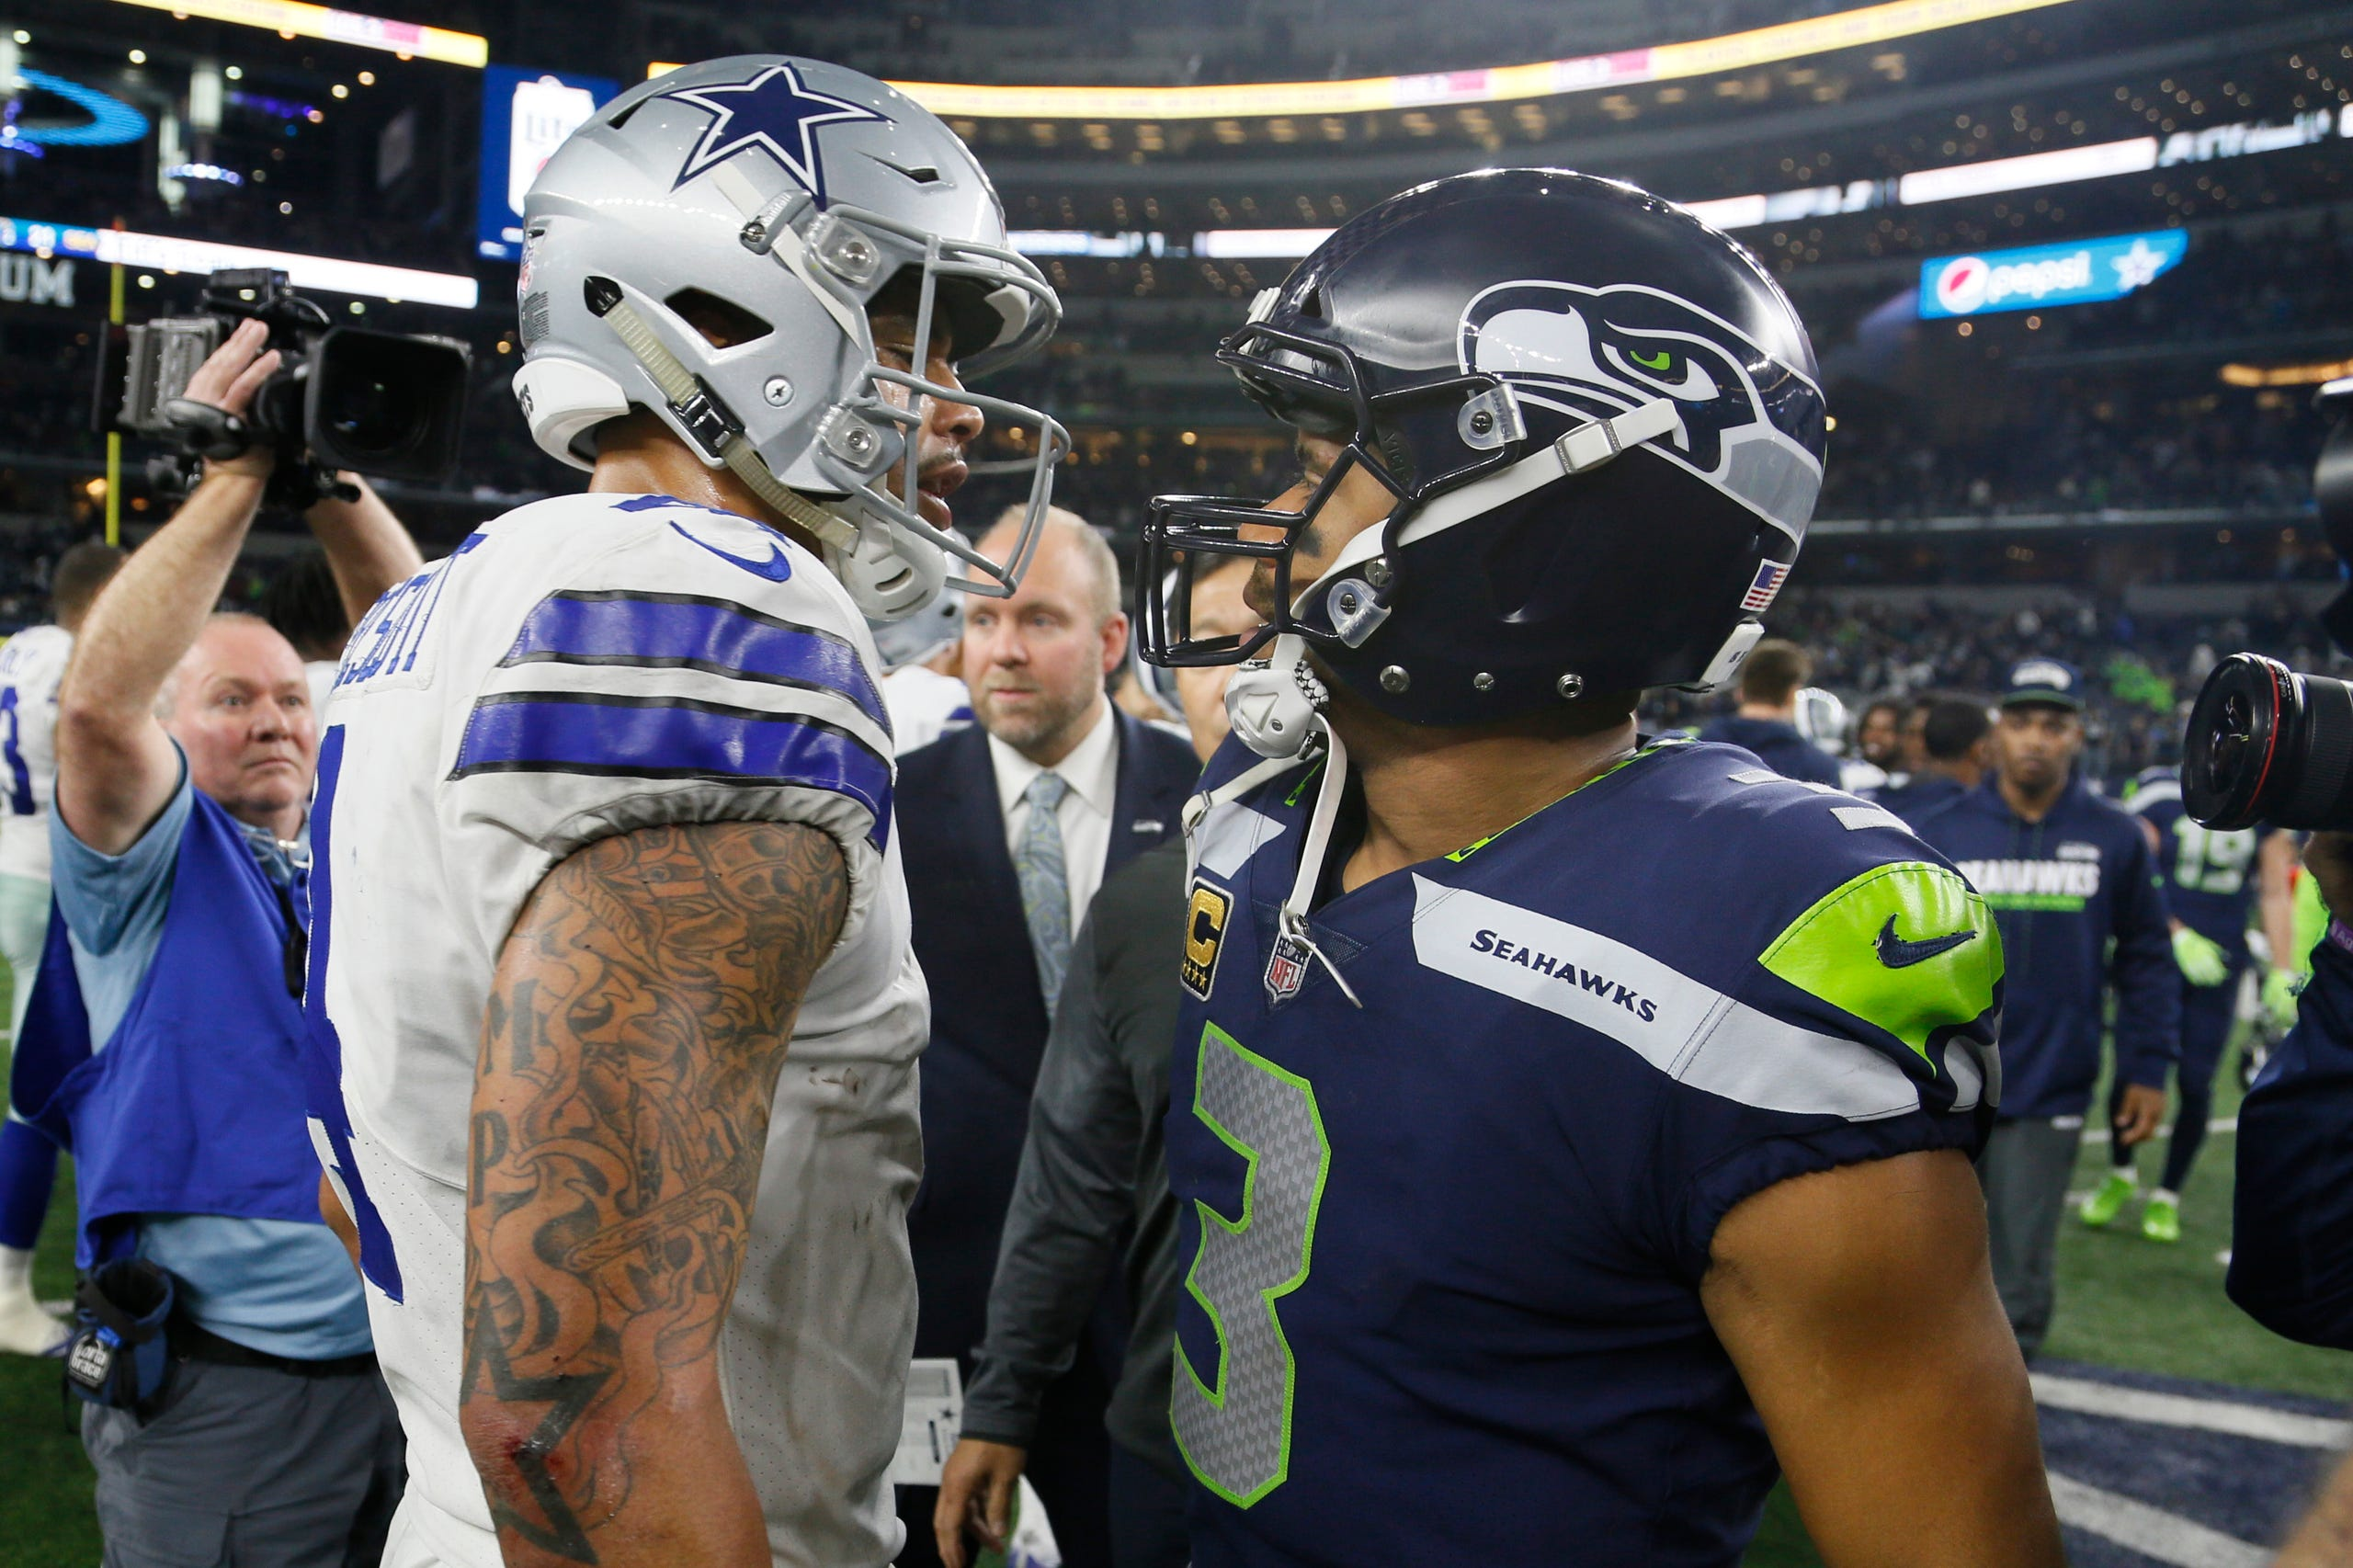 Dallas Cowboys quarterback Dak Prescott (4) meets with Seattle Seahawks quarterback Russell Wilson (3) after a game at AT&T Stadium.